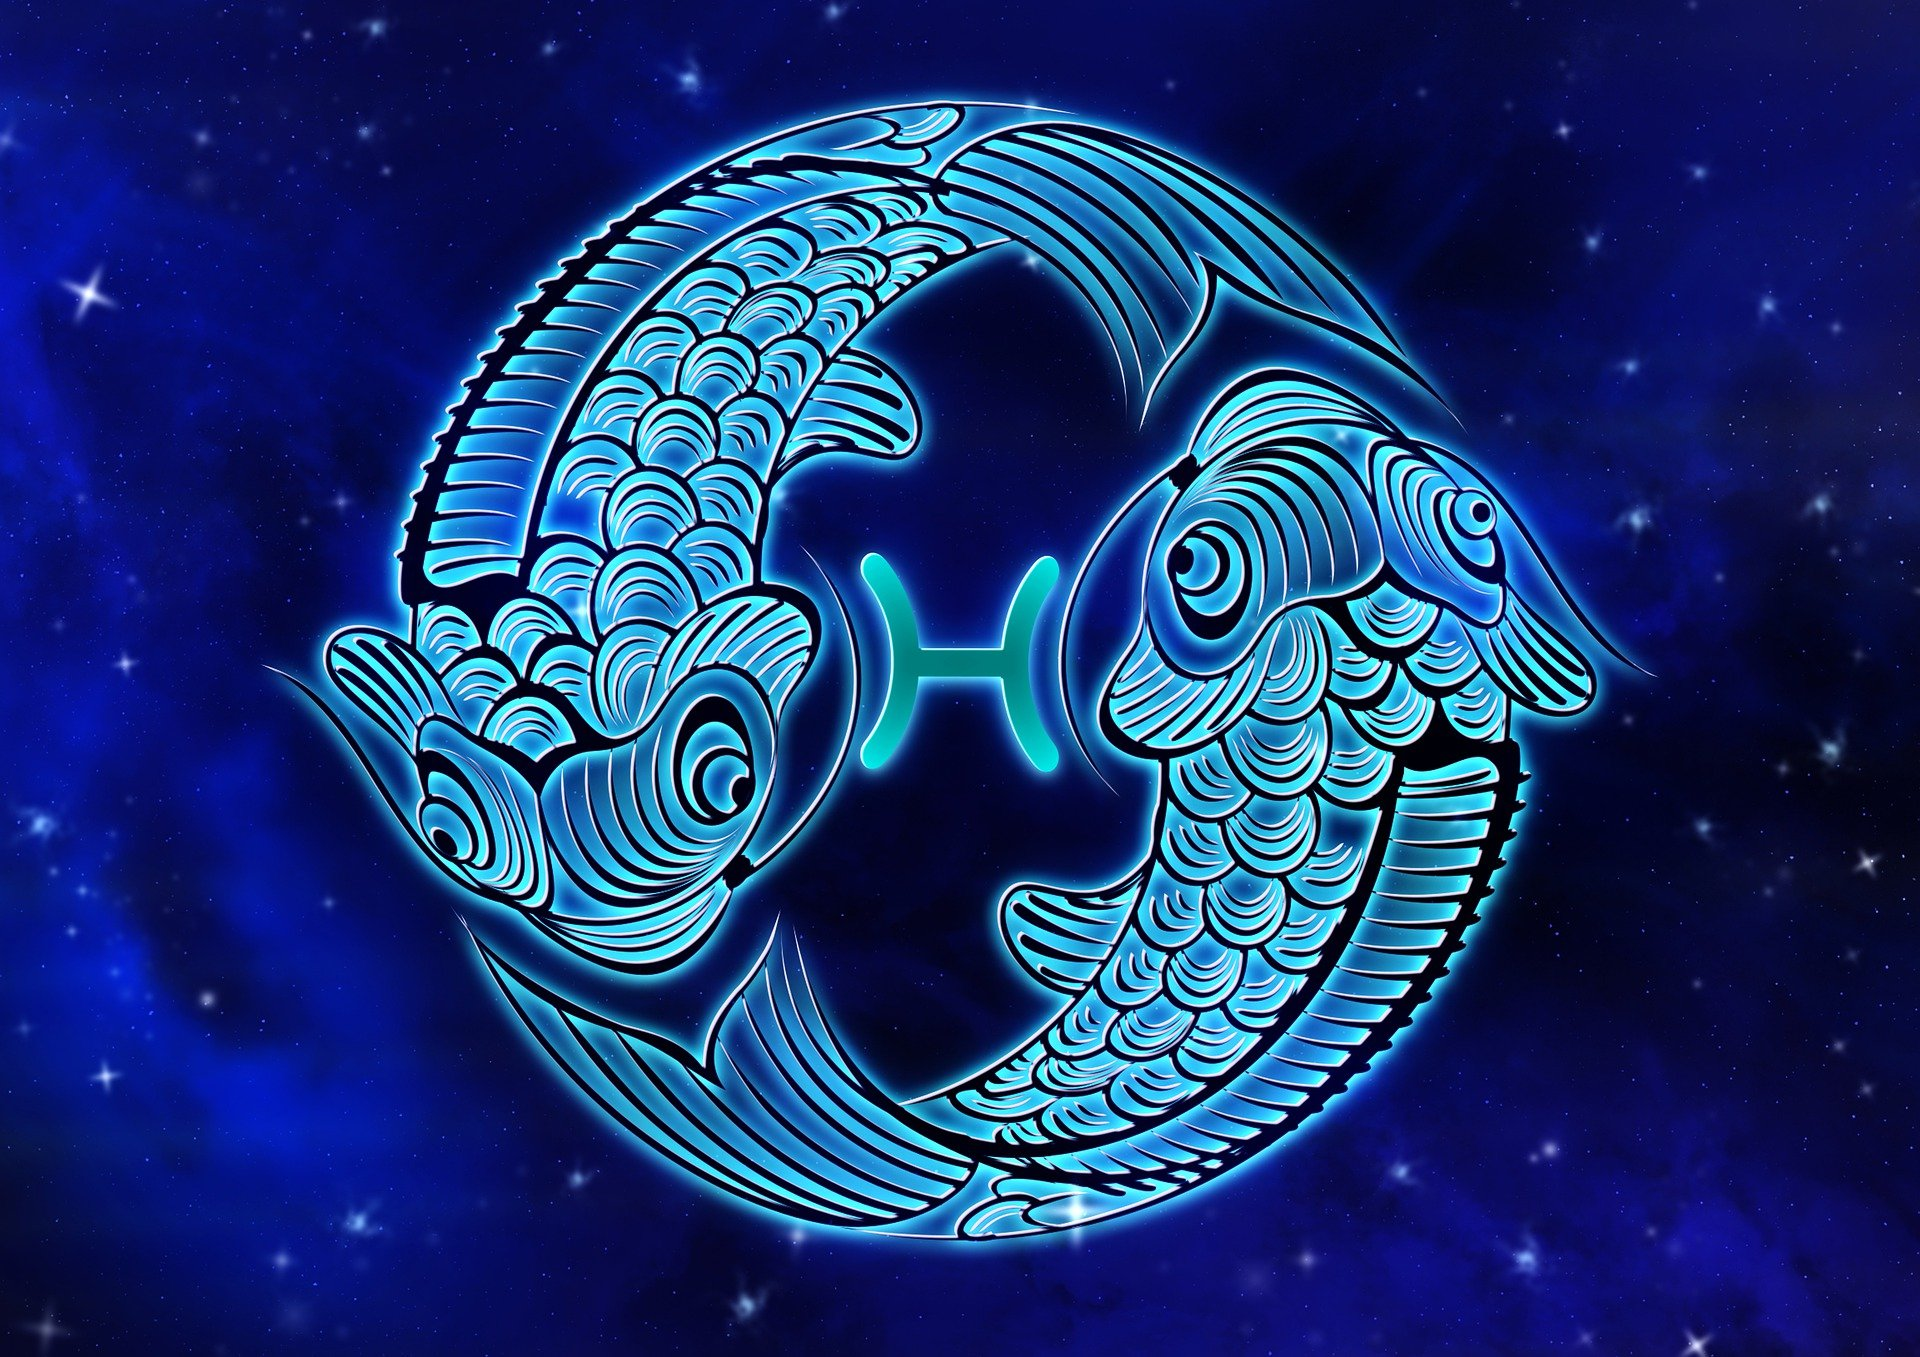 An illustration of a Pisces star sign | Source: Pixabay